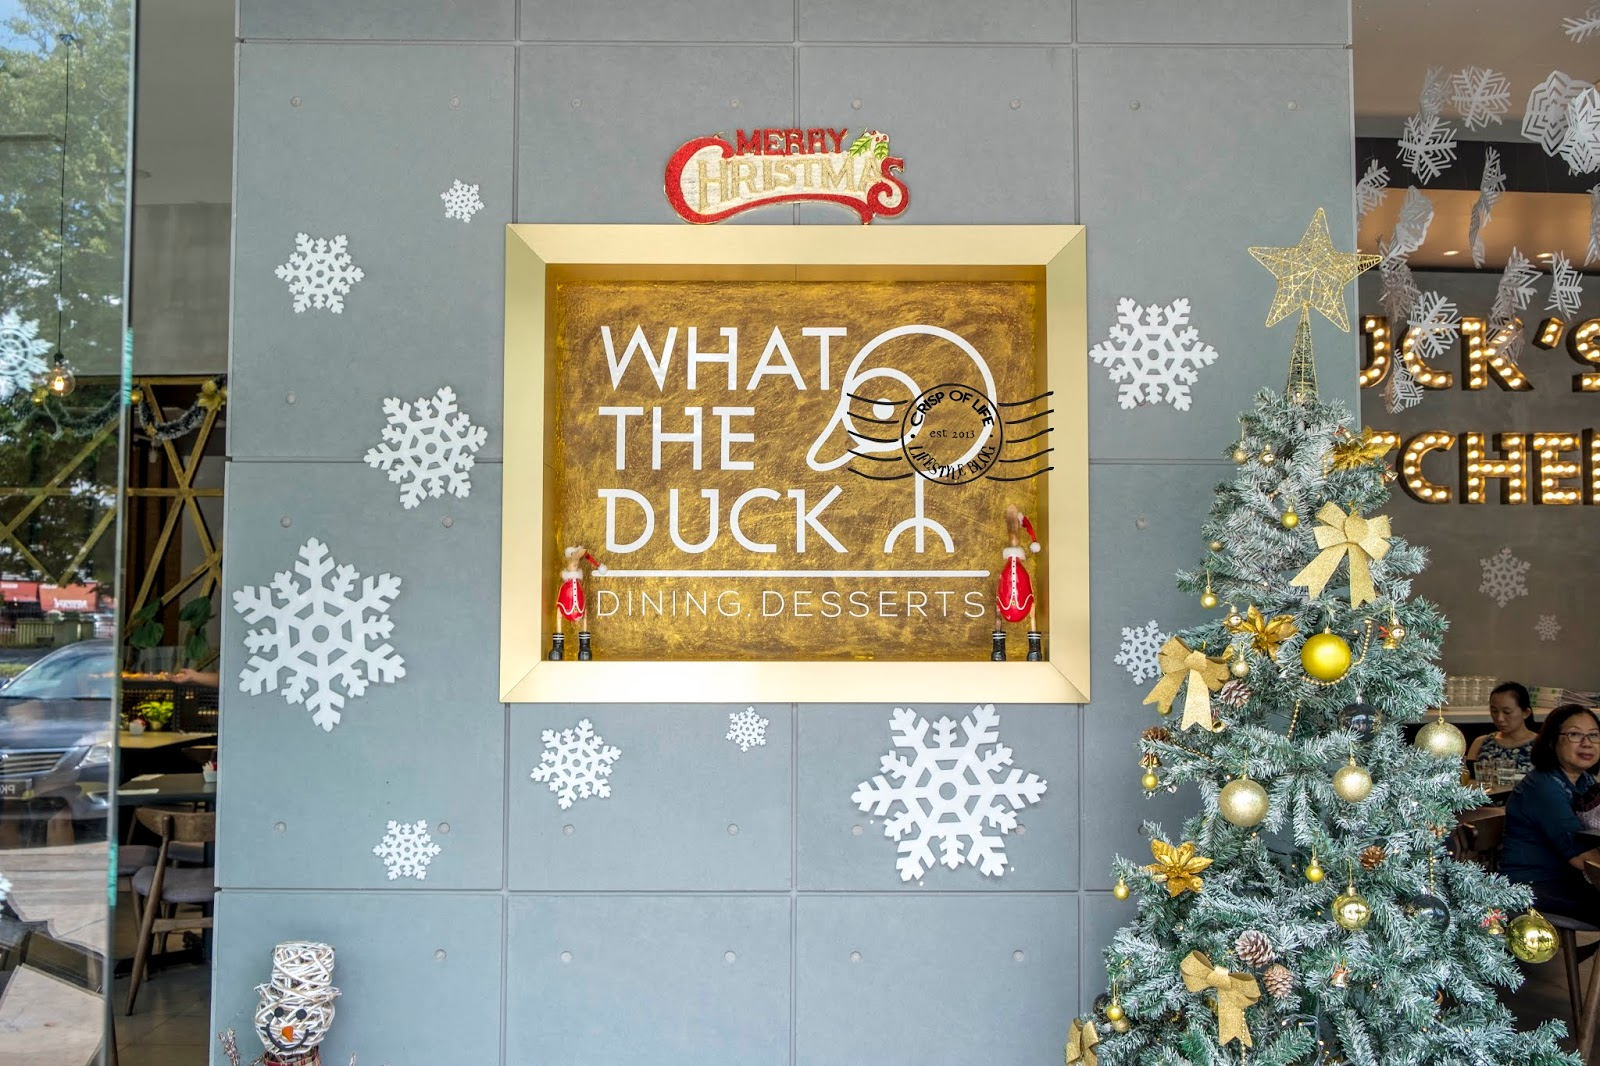 What The Duck at Setia Spice Canopy, Bayan Lepas, Penang